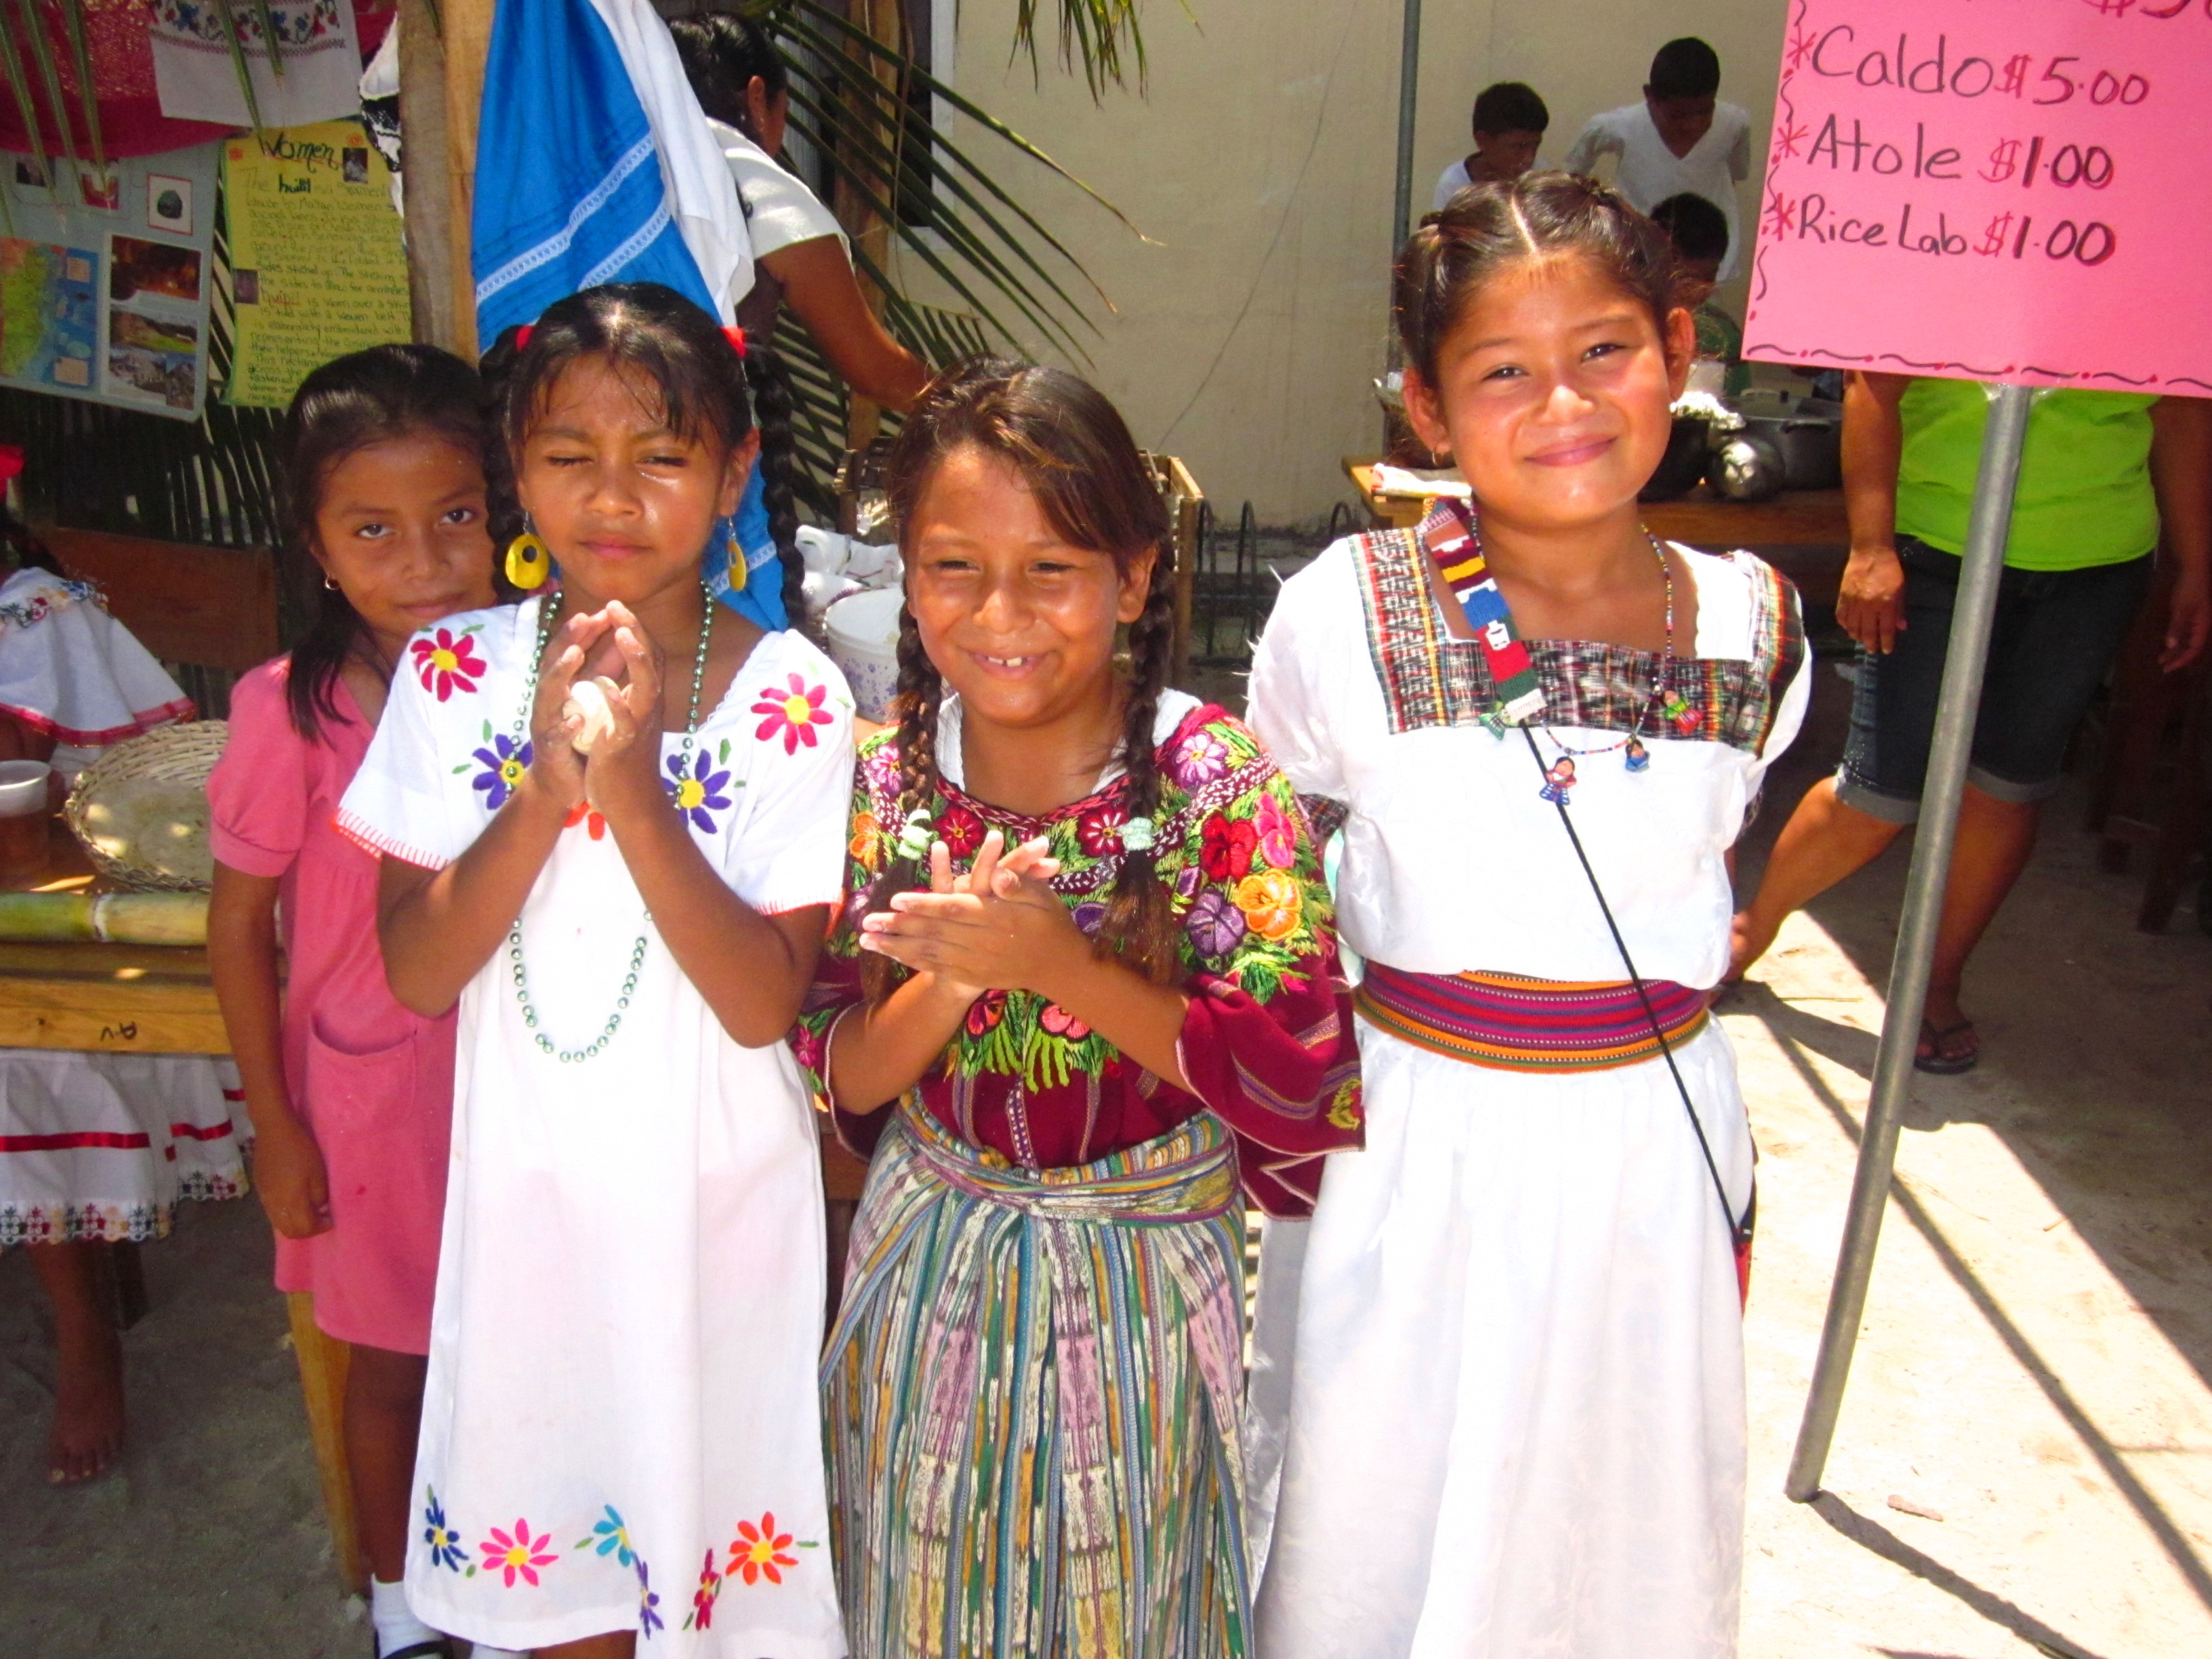 School girls dresses in traditional Maya outfits.